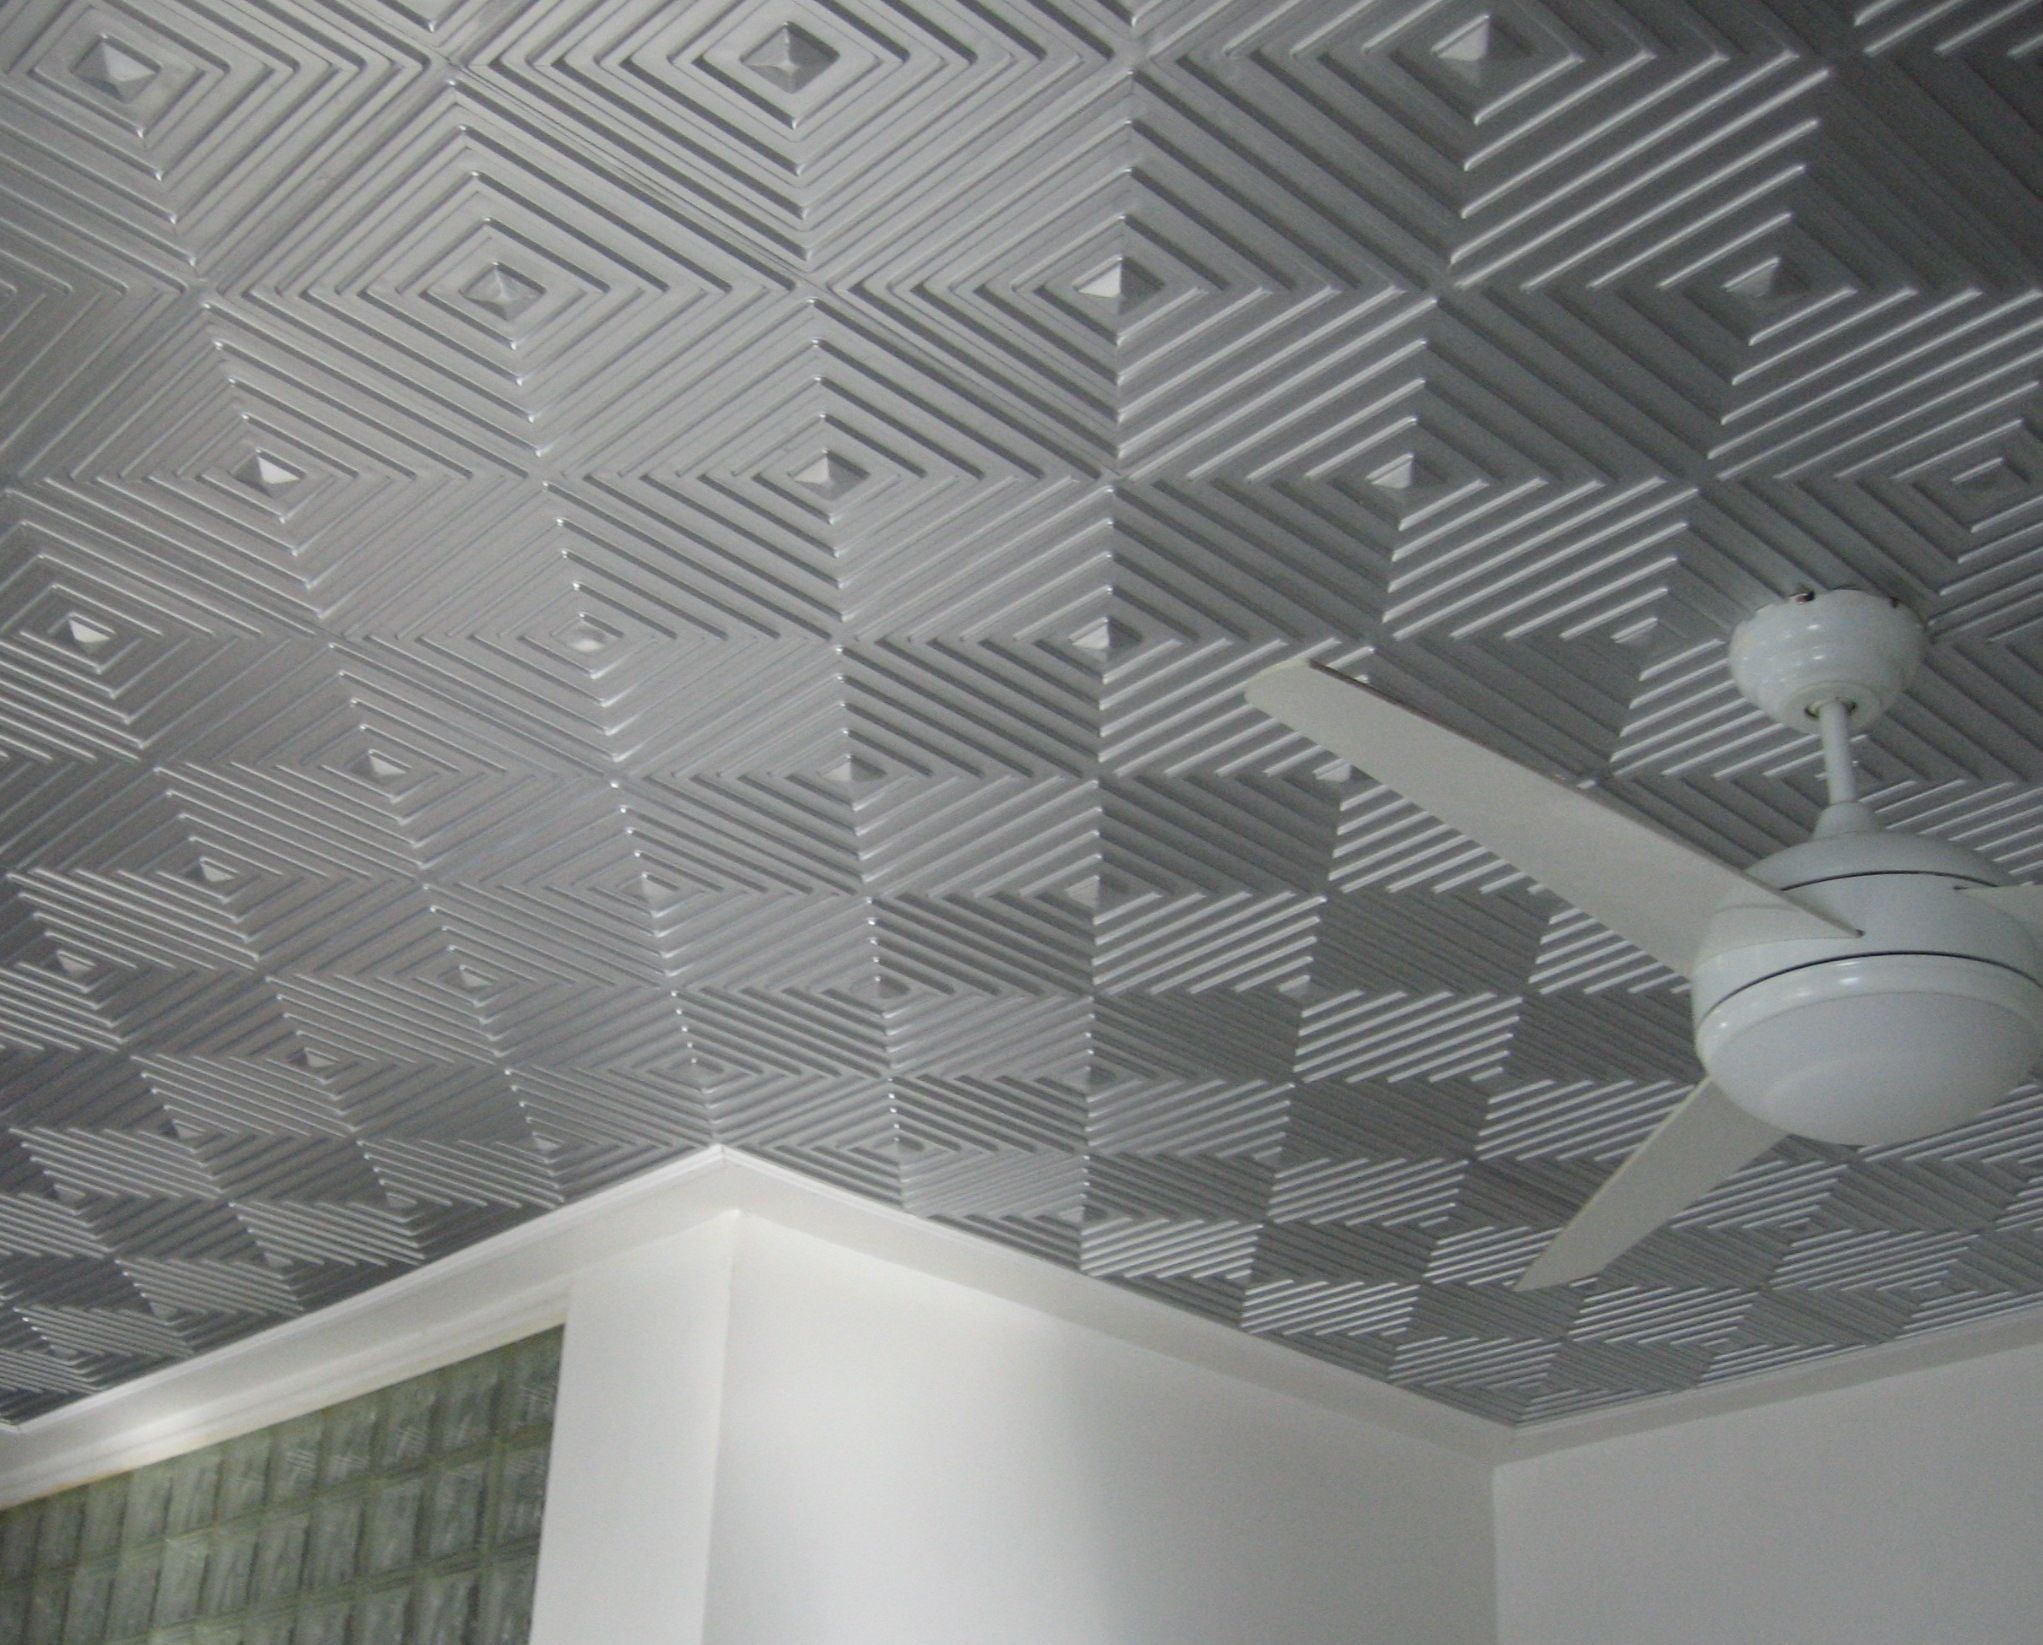 Architectural foam ceiling tiles httpcreativechairsandtables architectural foam ceiling tiles dailygadgetfo Gallery